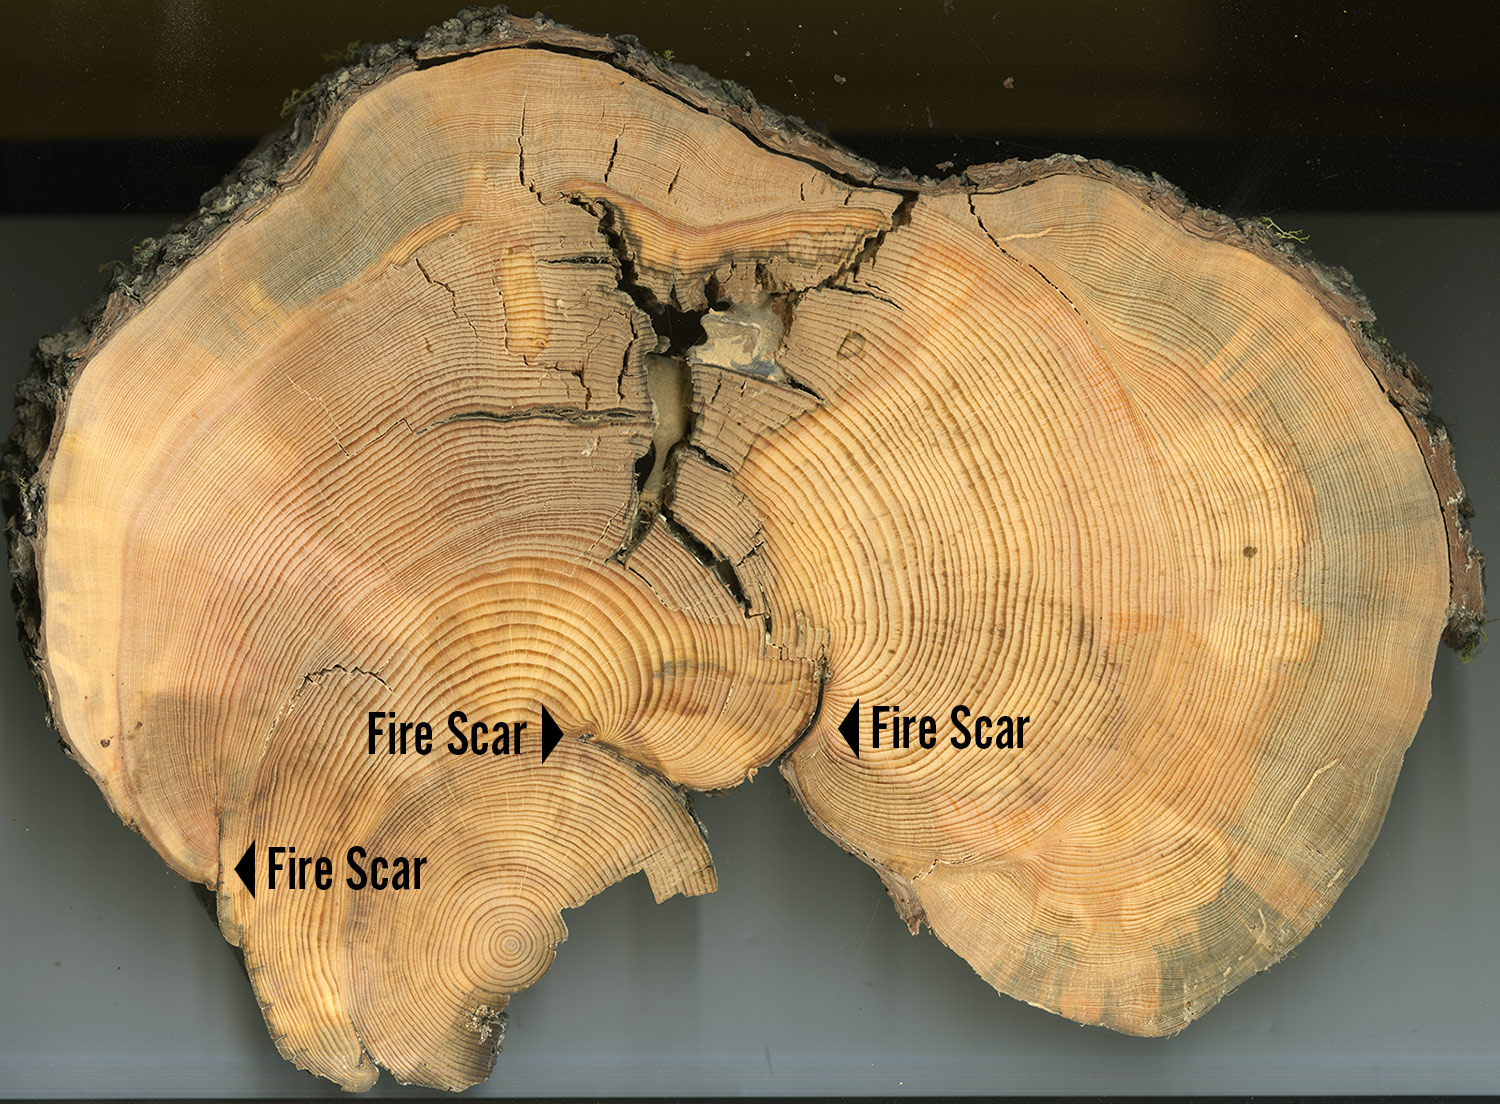 Tree cookie (cross-section) with fire scars labelled. The Landscapes in Motion Fire Regime Team uses this information to reconstruct the fire history of the area.